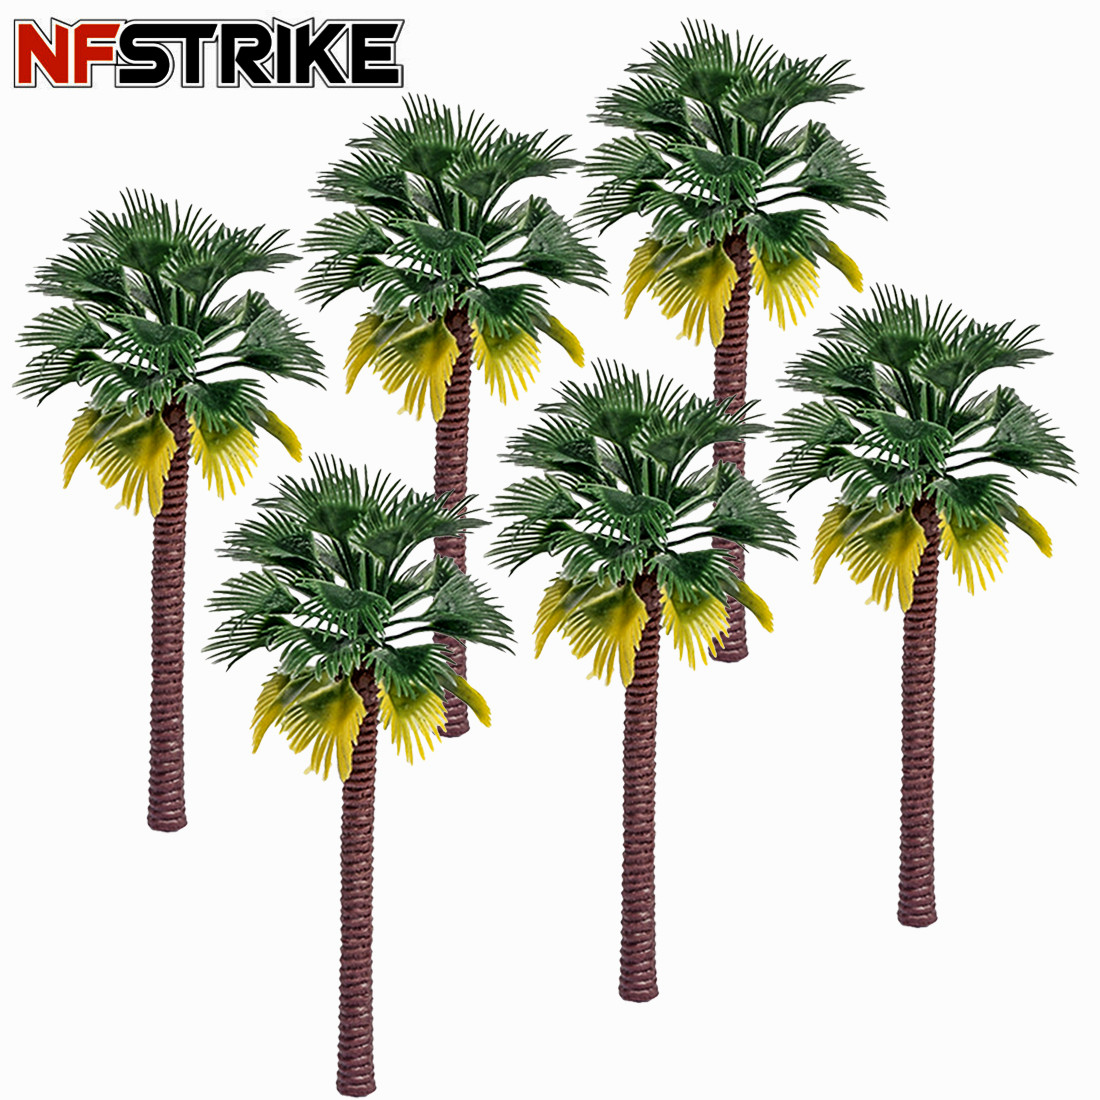 6 Pcs/Lot 12cm/15cm Plastic Coconut Palm Tree Train Railroad Architecture Diorama Tree Model Kits Toys Accessories Drop Shipping image